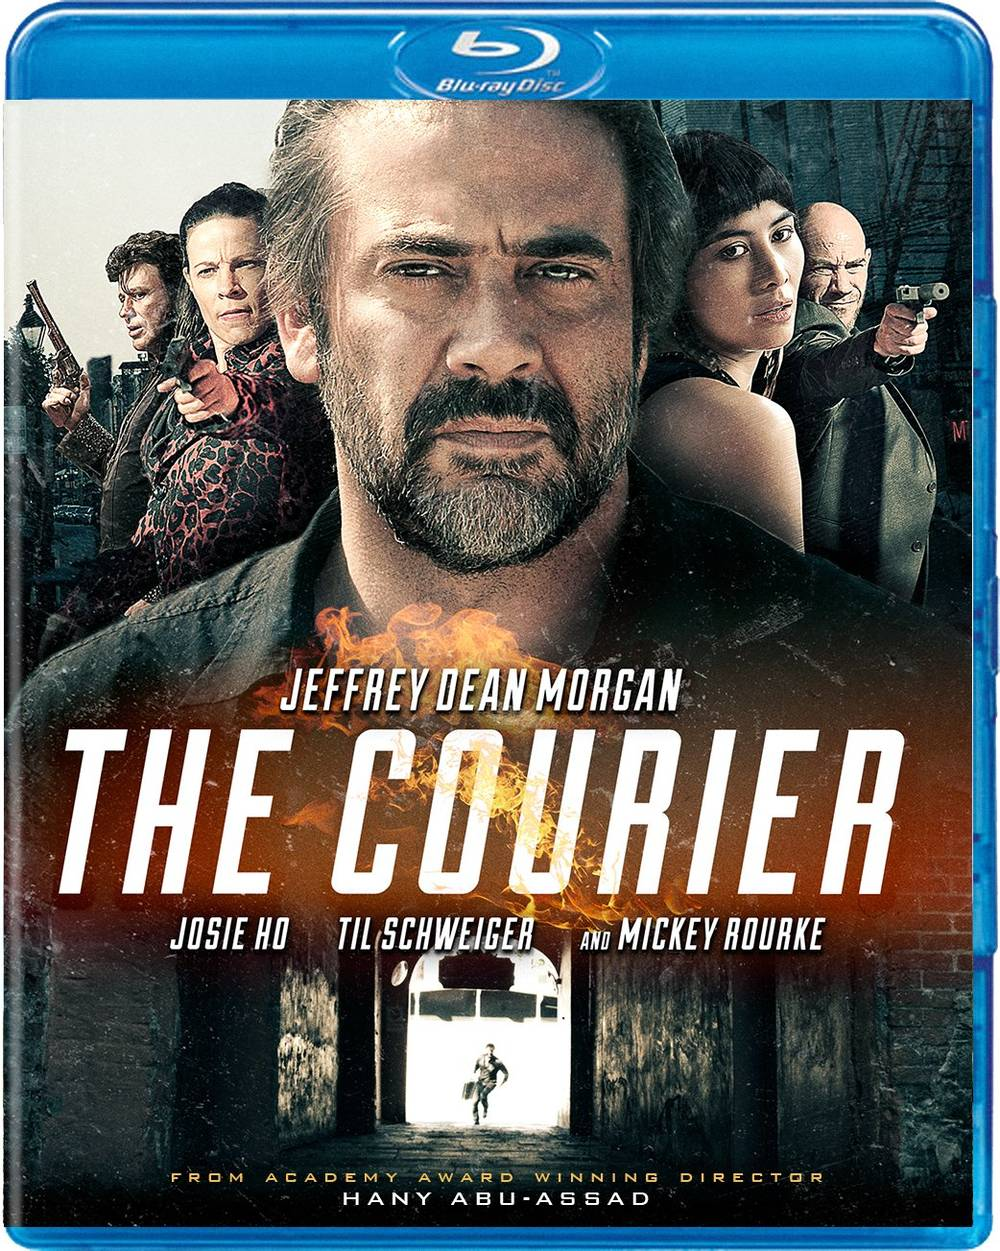 The Courier [2012 Movie] - The Courier